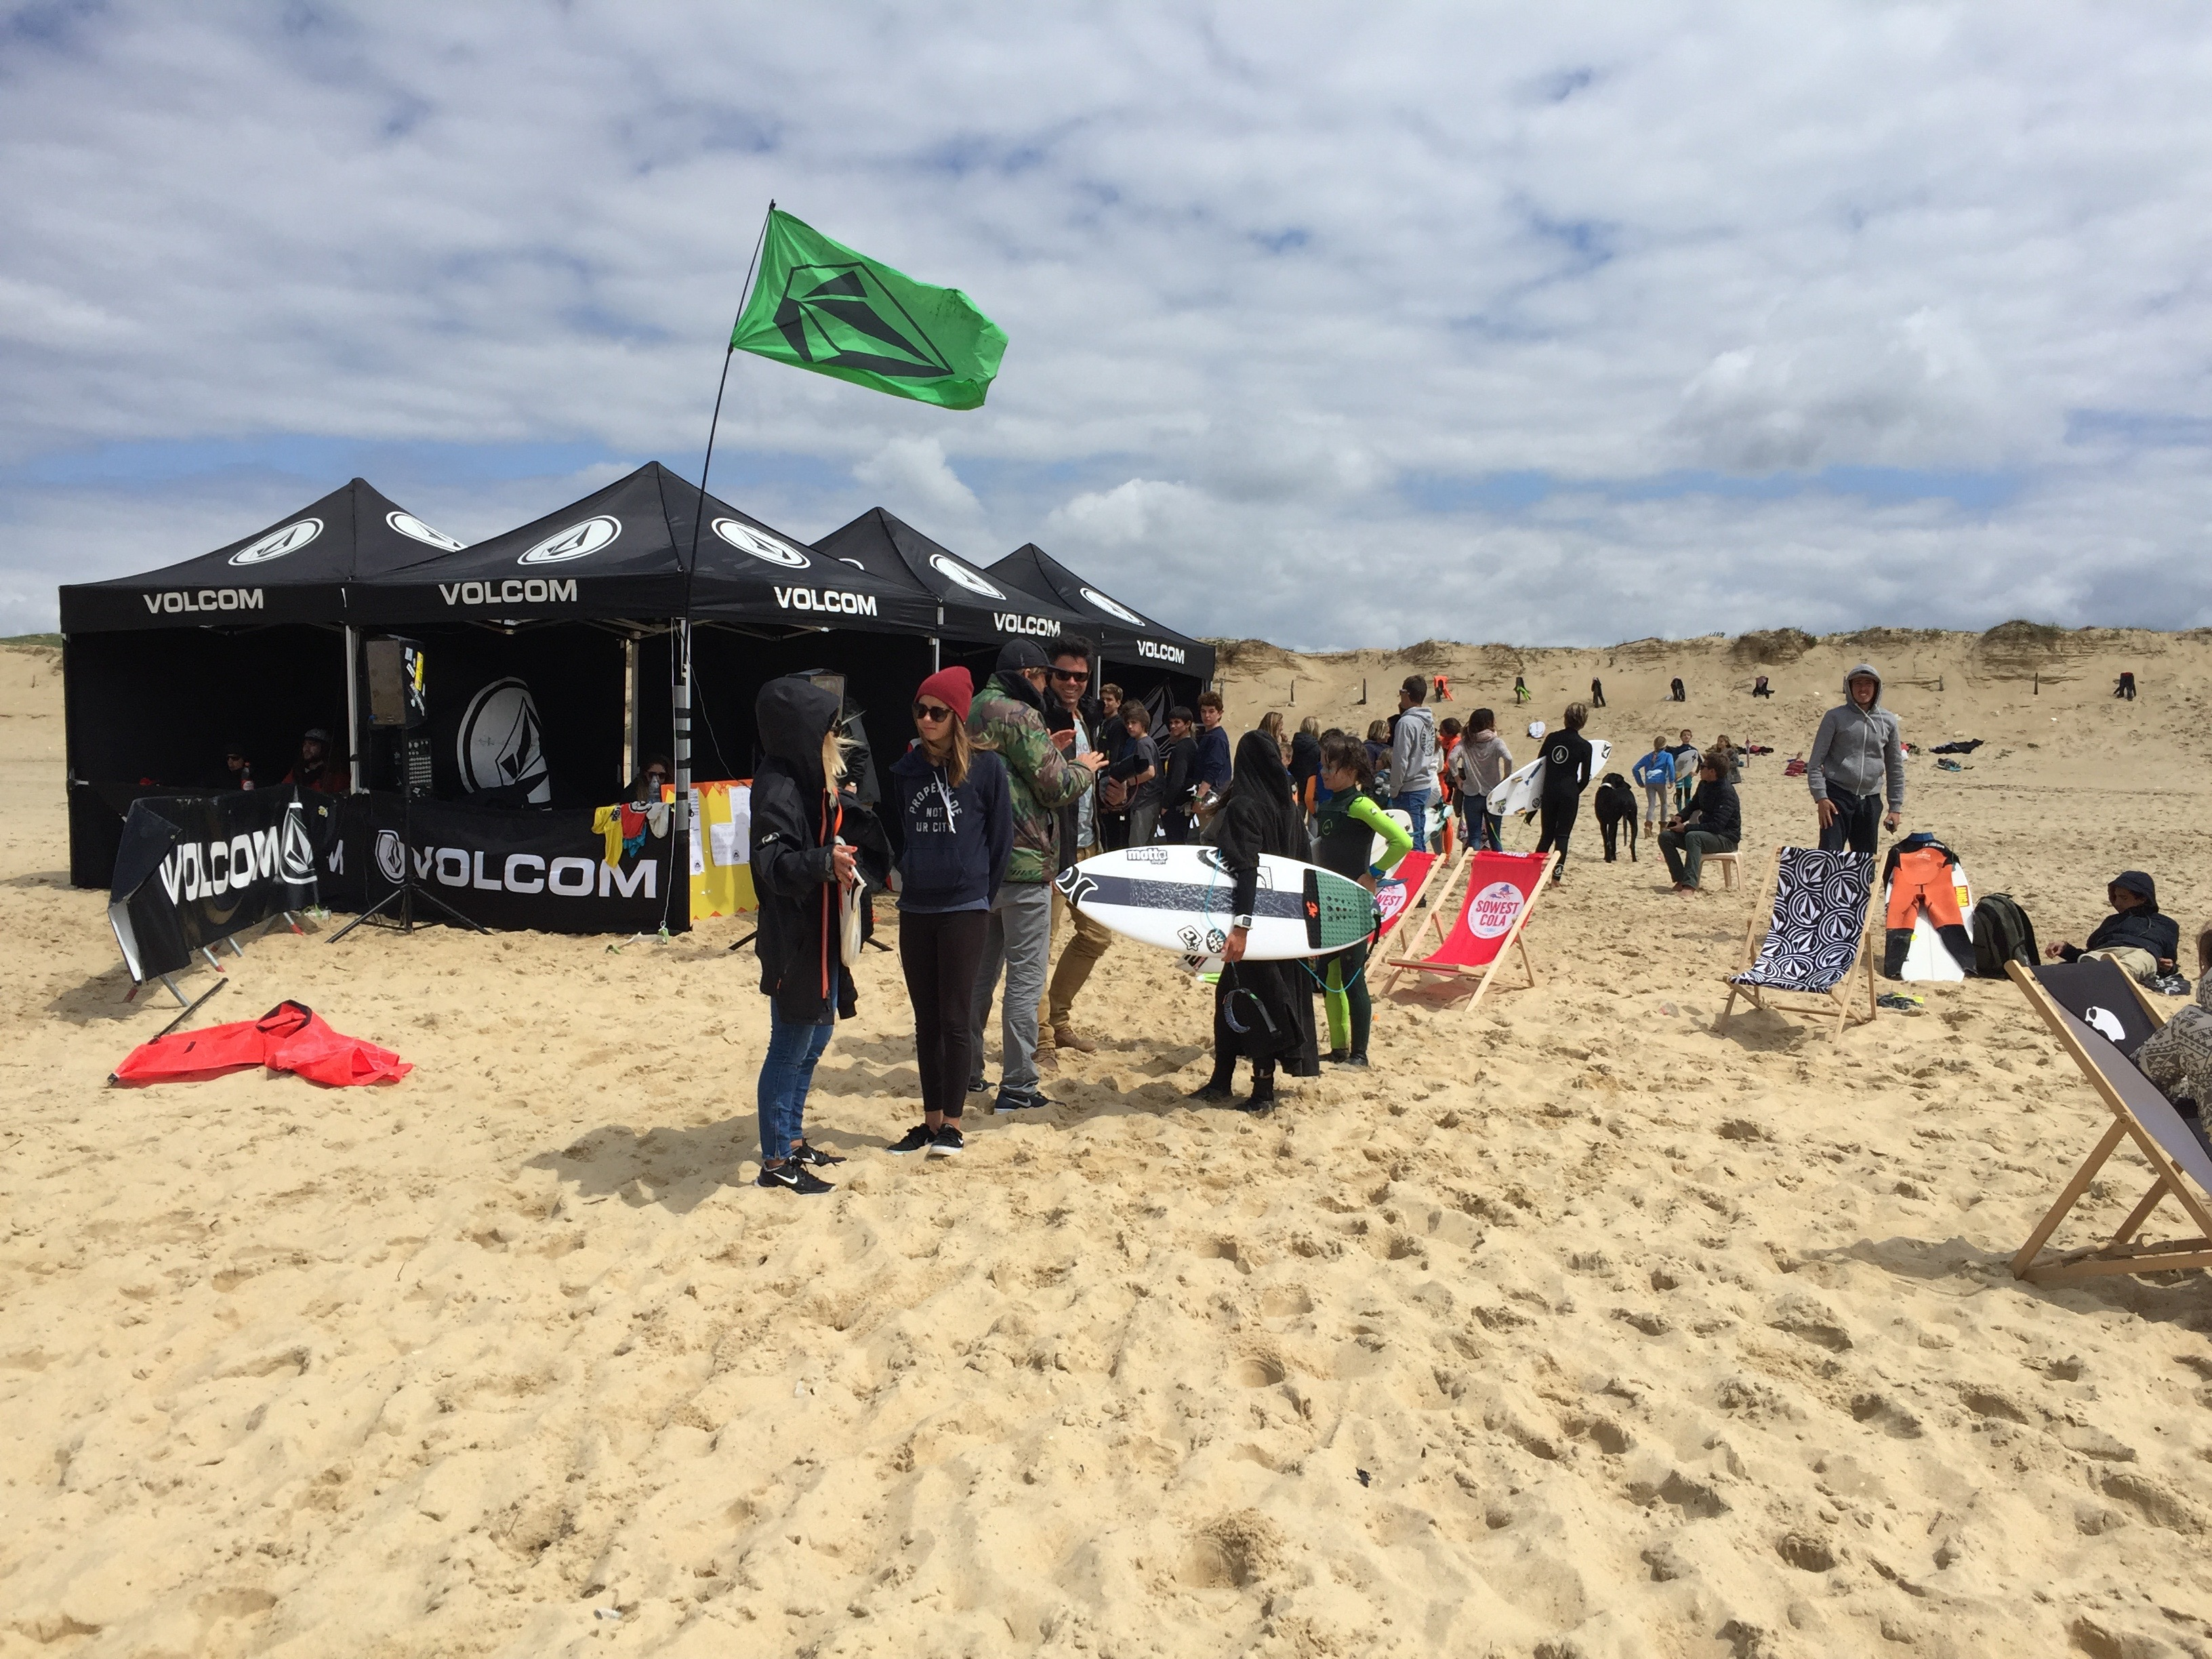 http www volcom eu news the mulletfish surf series in hossegor france ends volcoms totally crustaceous tour european leg in fine form